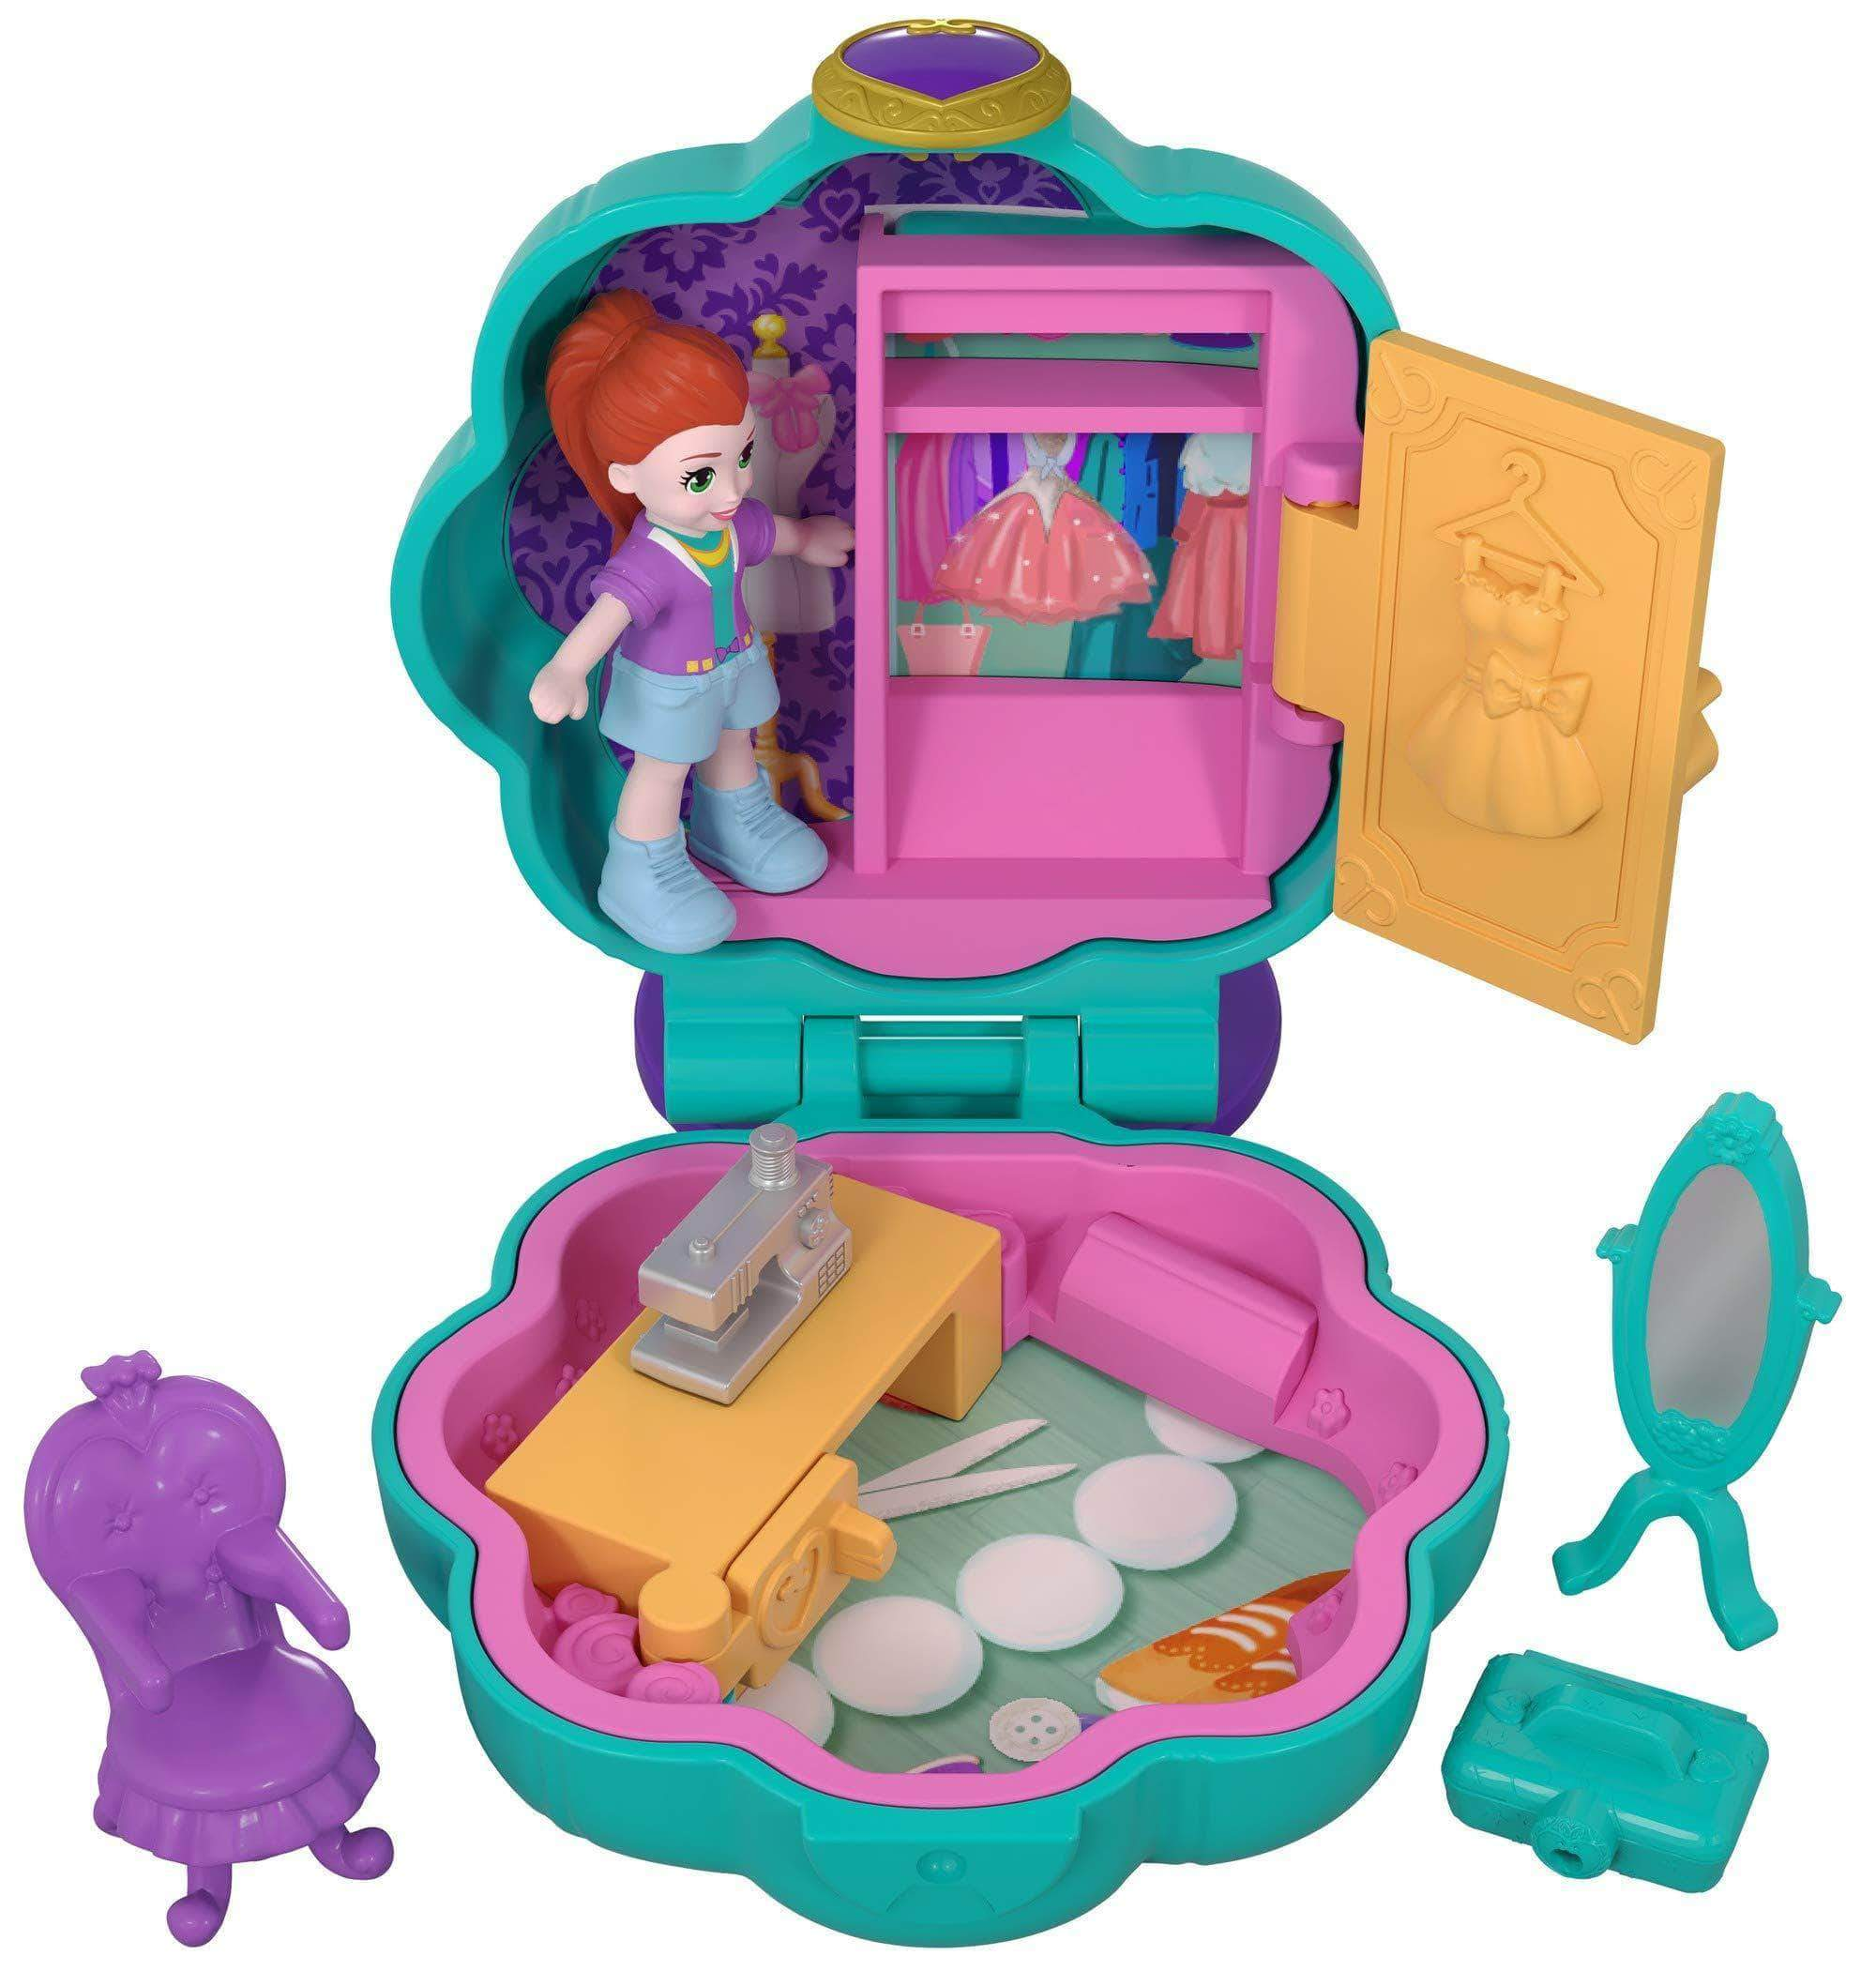 Amazon Polly Pocket Mini cofre estudio de moda, muñeca con accesorios (Mattel FRY31)